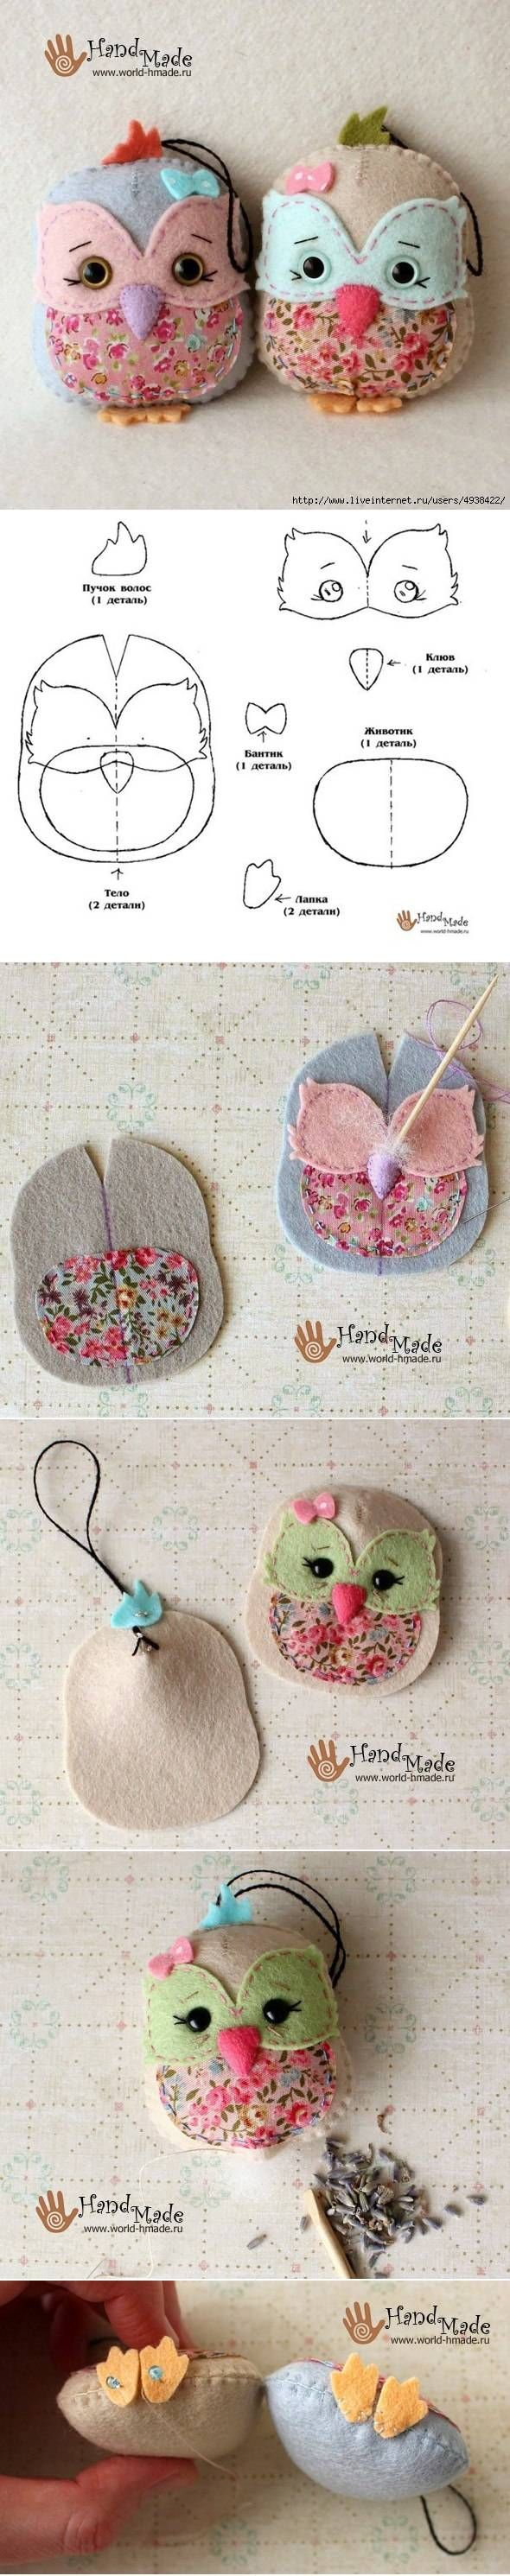 "<input+type=""hidden""+value=""""+data-frizzlyPostContainer=""""+data-frizzlyPostUrl=""http://www.usefuldiy.com/diy-adorable-felt-owl-tutorial/""+data-frizzlyPostTitle=""DIY+Adorable+Felt+Owl+Tutorial""+data-frizzlyHoverContainer=""""><p>>>>+Craft+Tutorials+More+Free+Instructions+Free+Tutorials+More+Craft+Tutorials</p>"